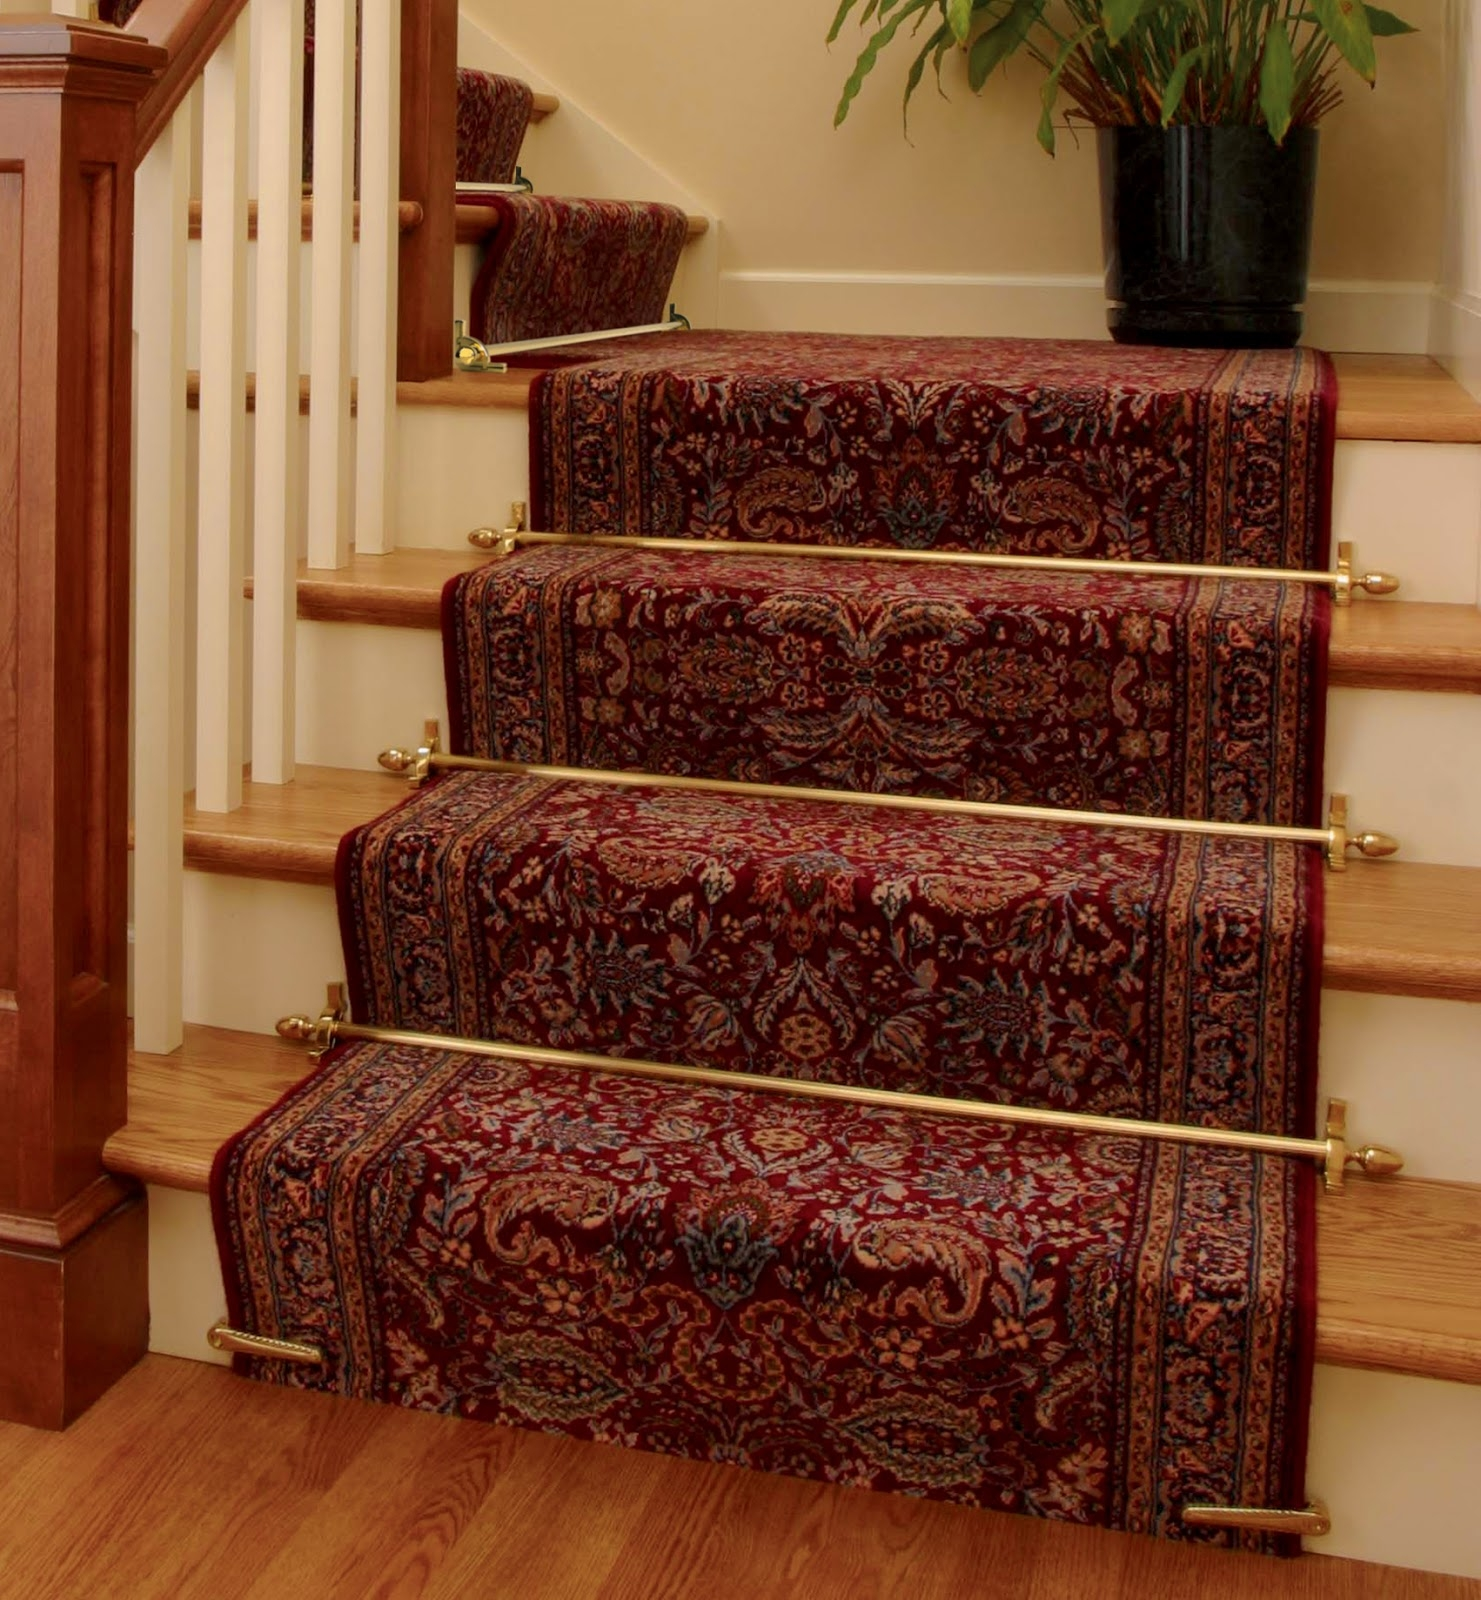 Interior Ornate Carpet Runner With Border And Gold Iron Front Pertaining To Hallway Runners Floral (#11 of 20)